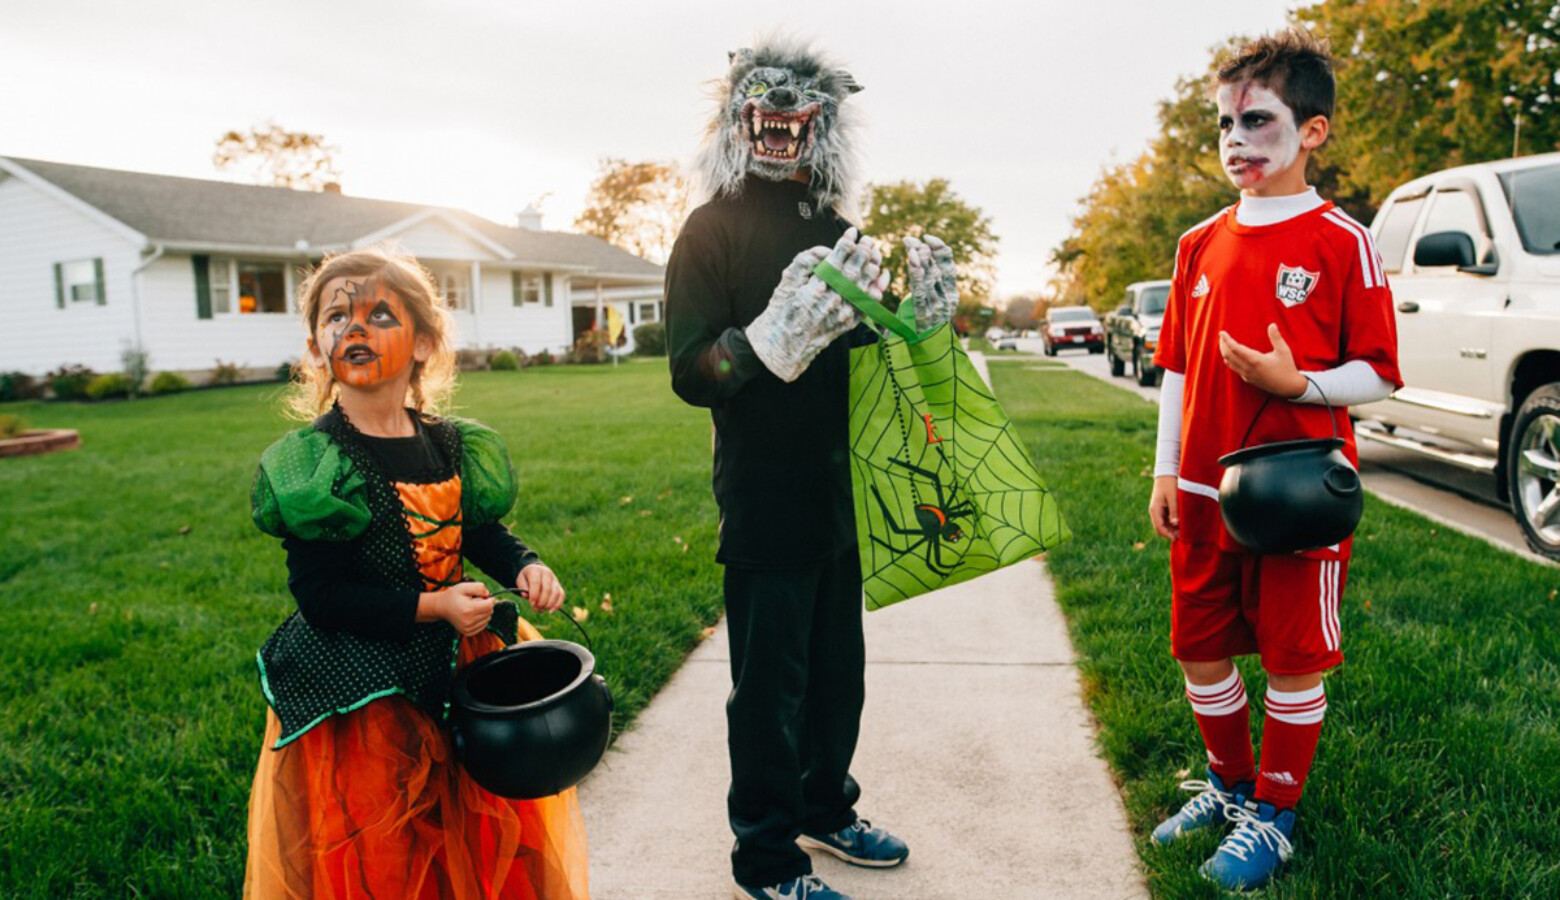 Indiana Halloween Children 2020 State Health Commissioner: Halloween Can Be Safe With Precautions